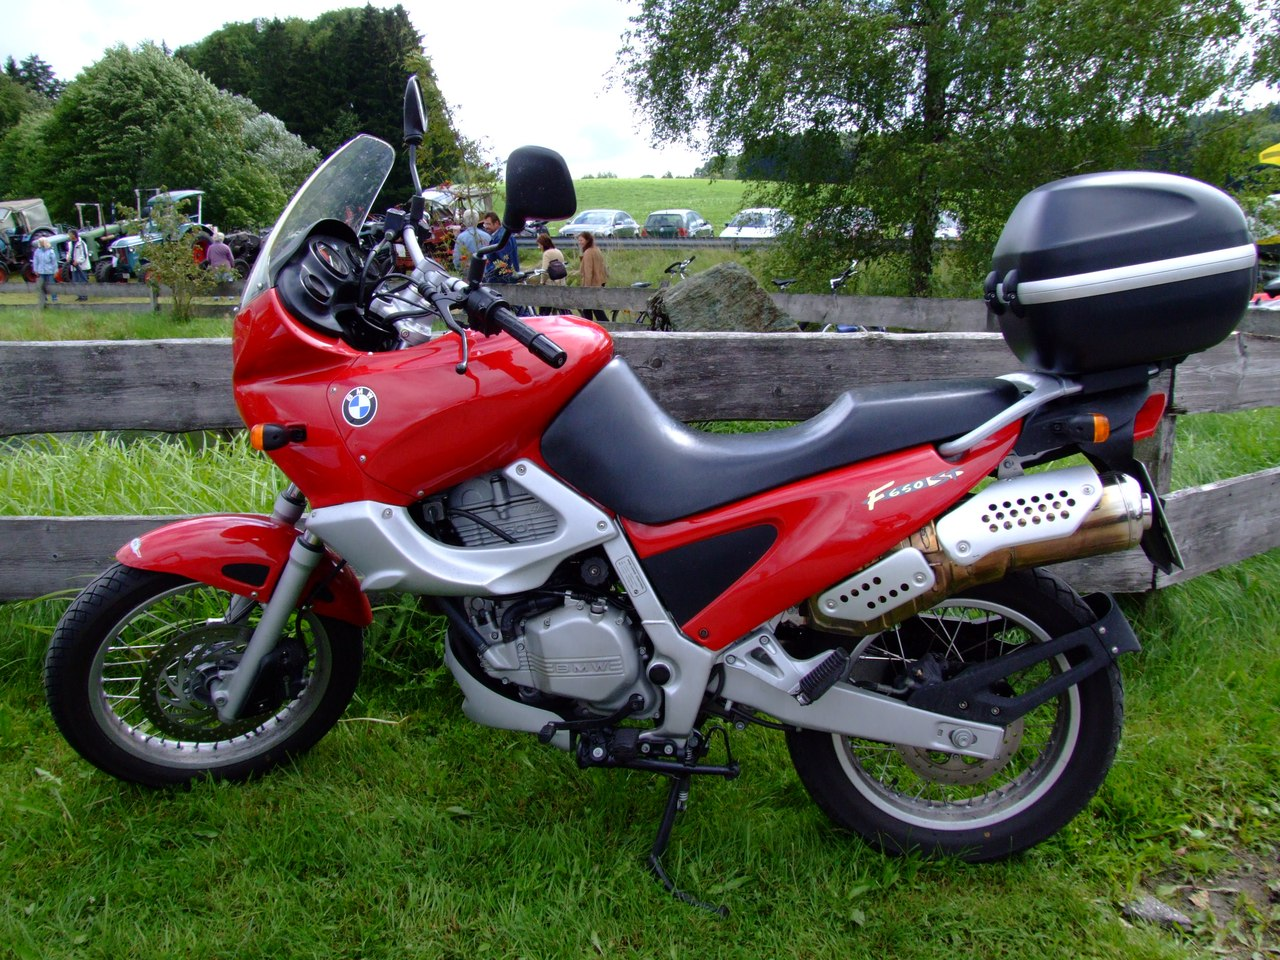 BMW R80GS 1995 images #6415